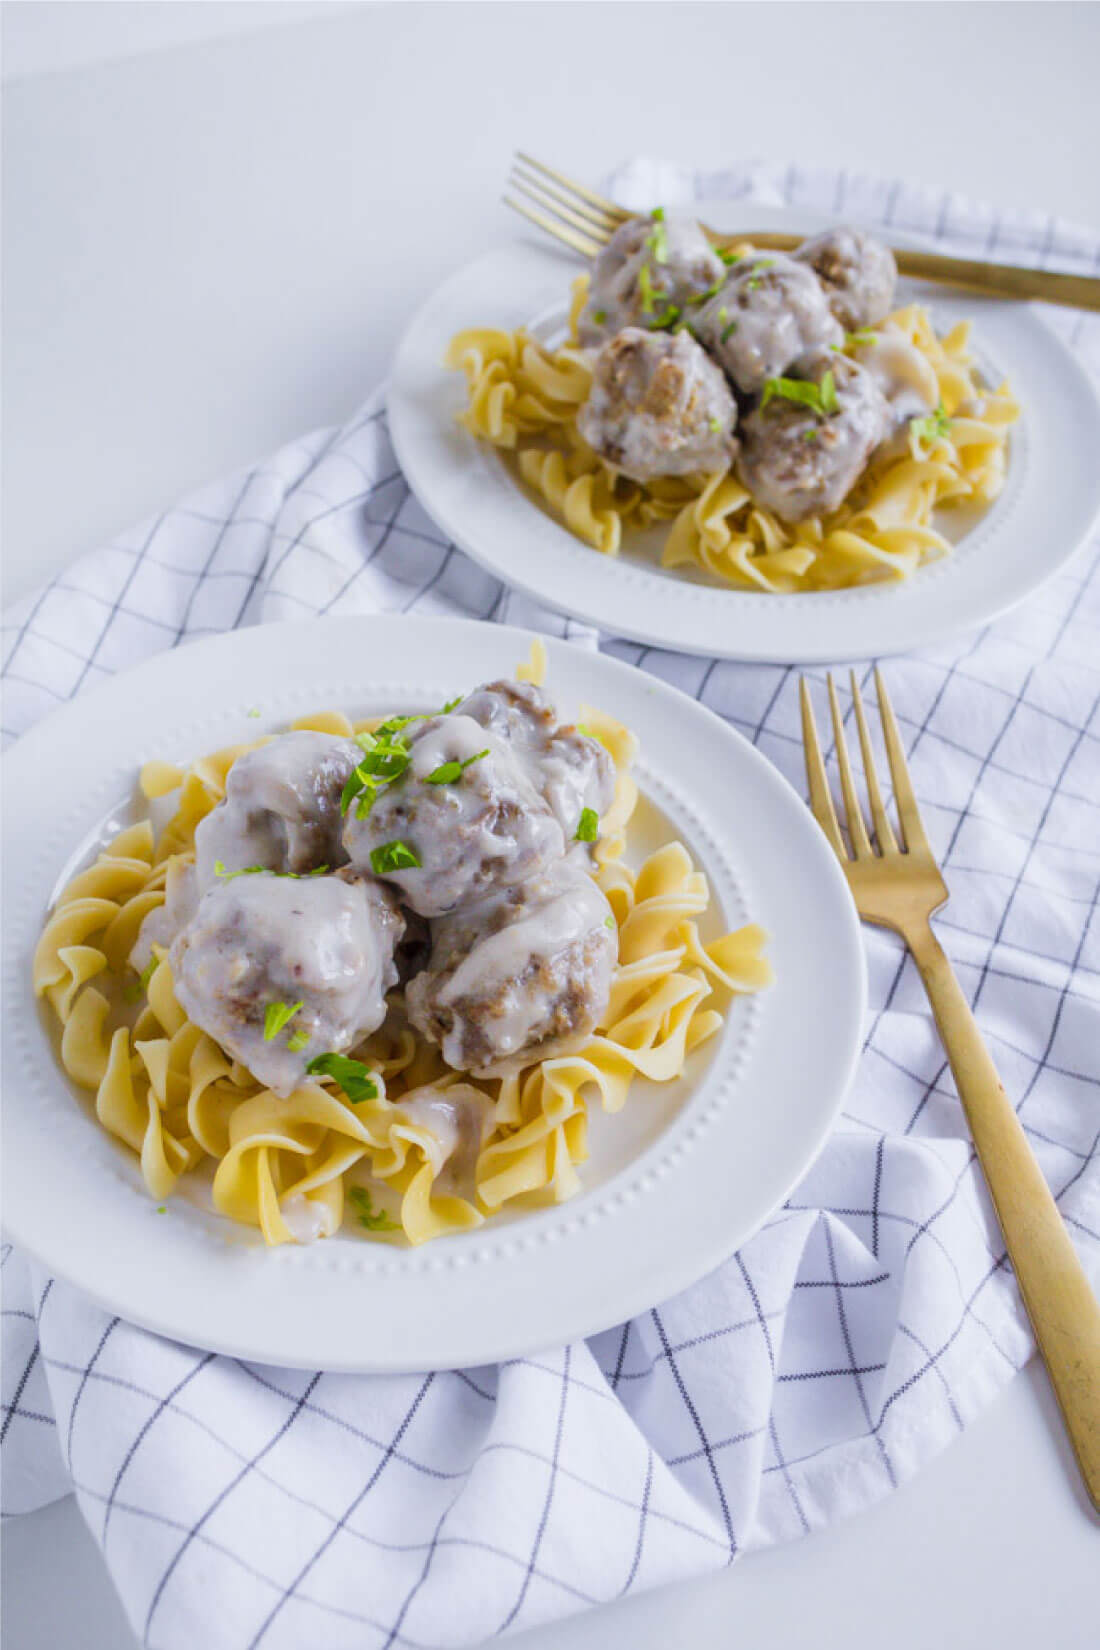 Swedish Meatball Recipe- an easy to make dinner idea with a rich, creamy sauce served over egg noodles.